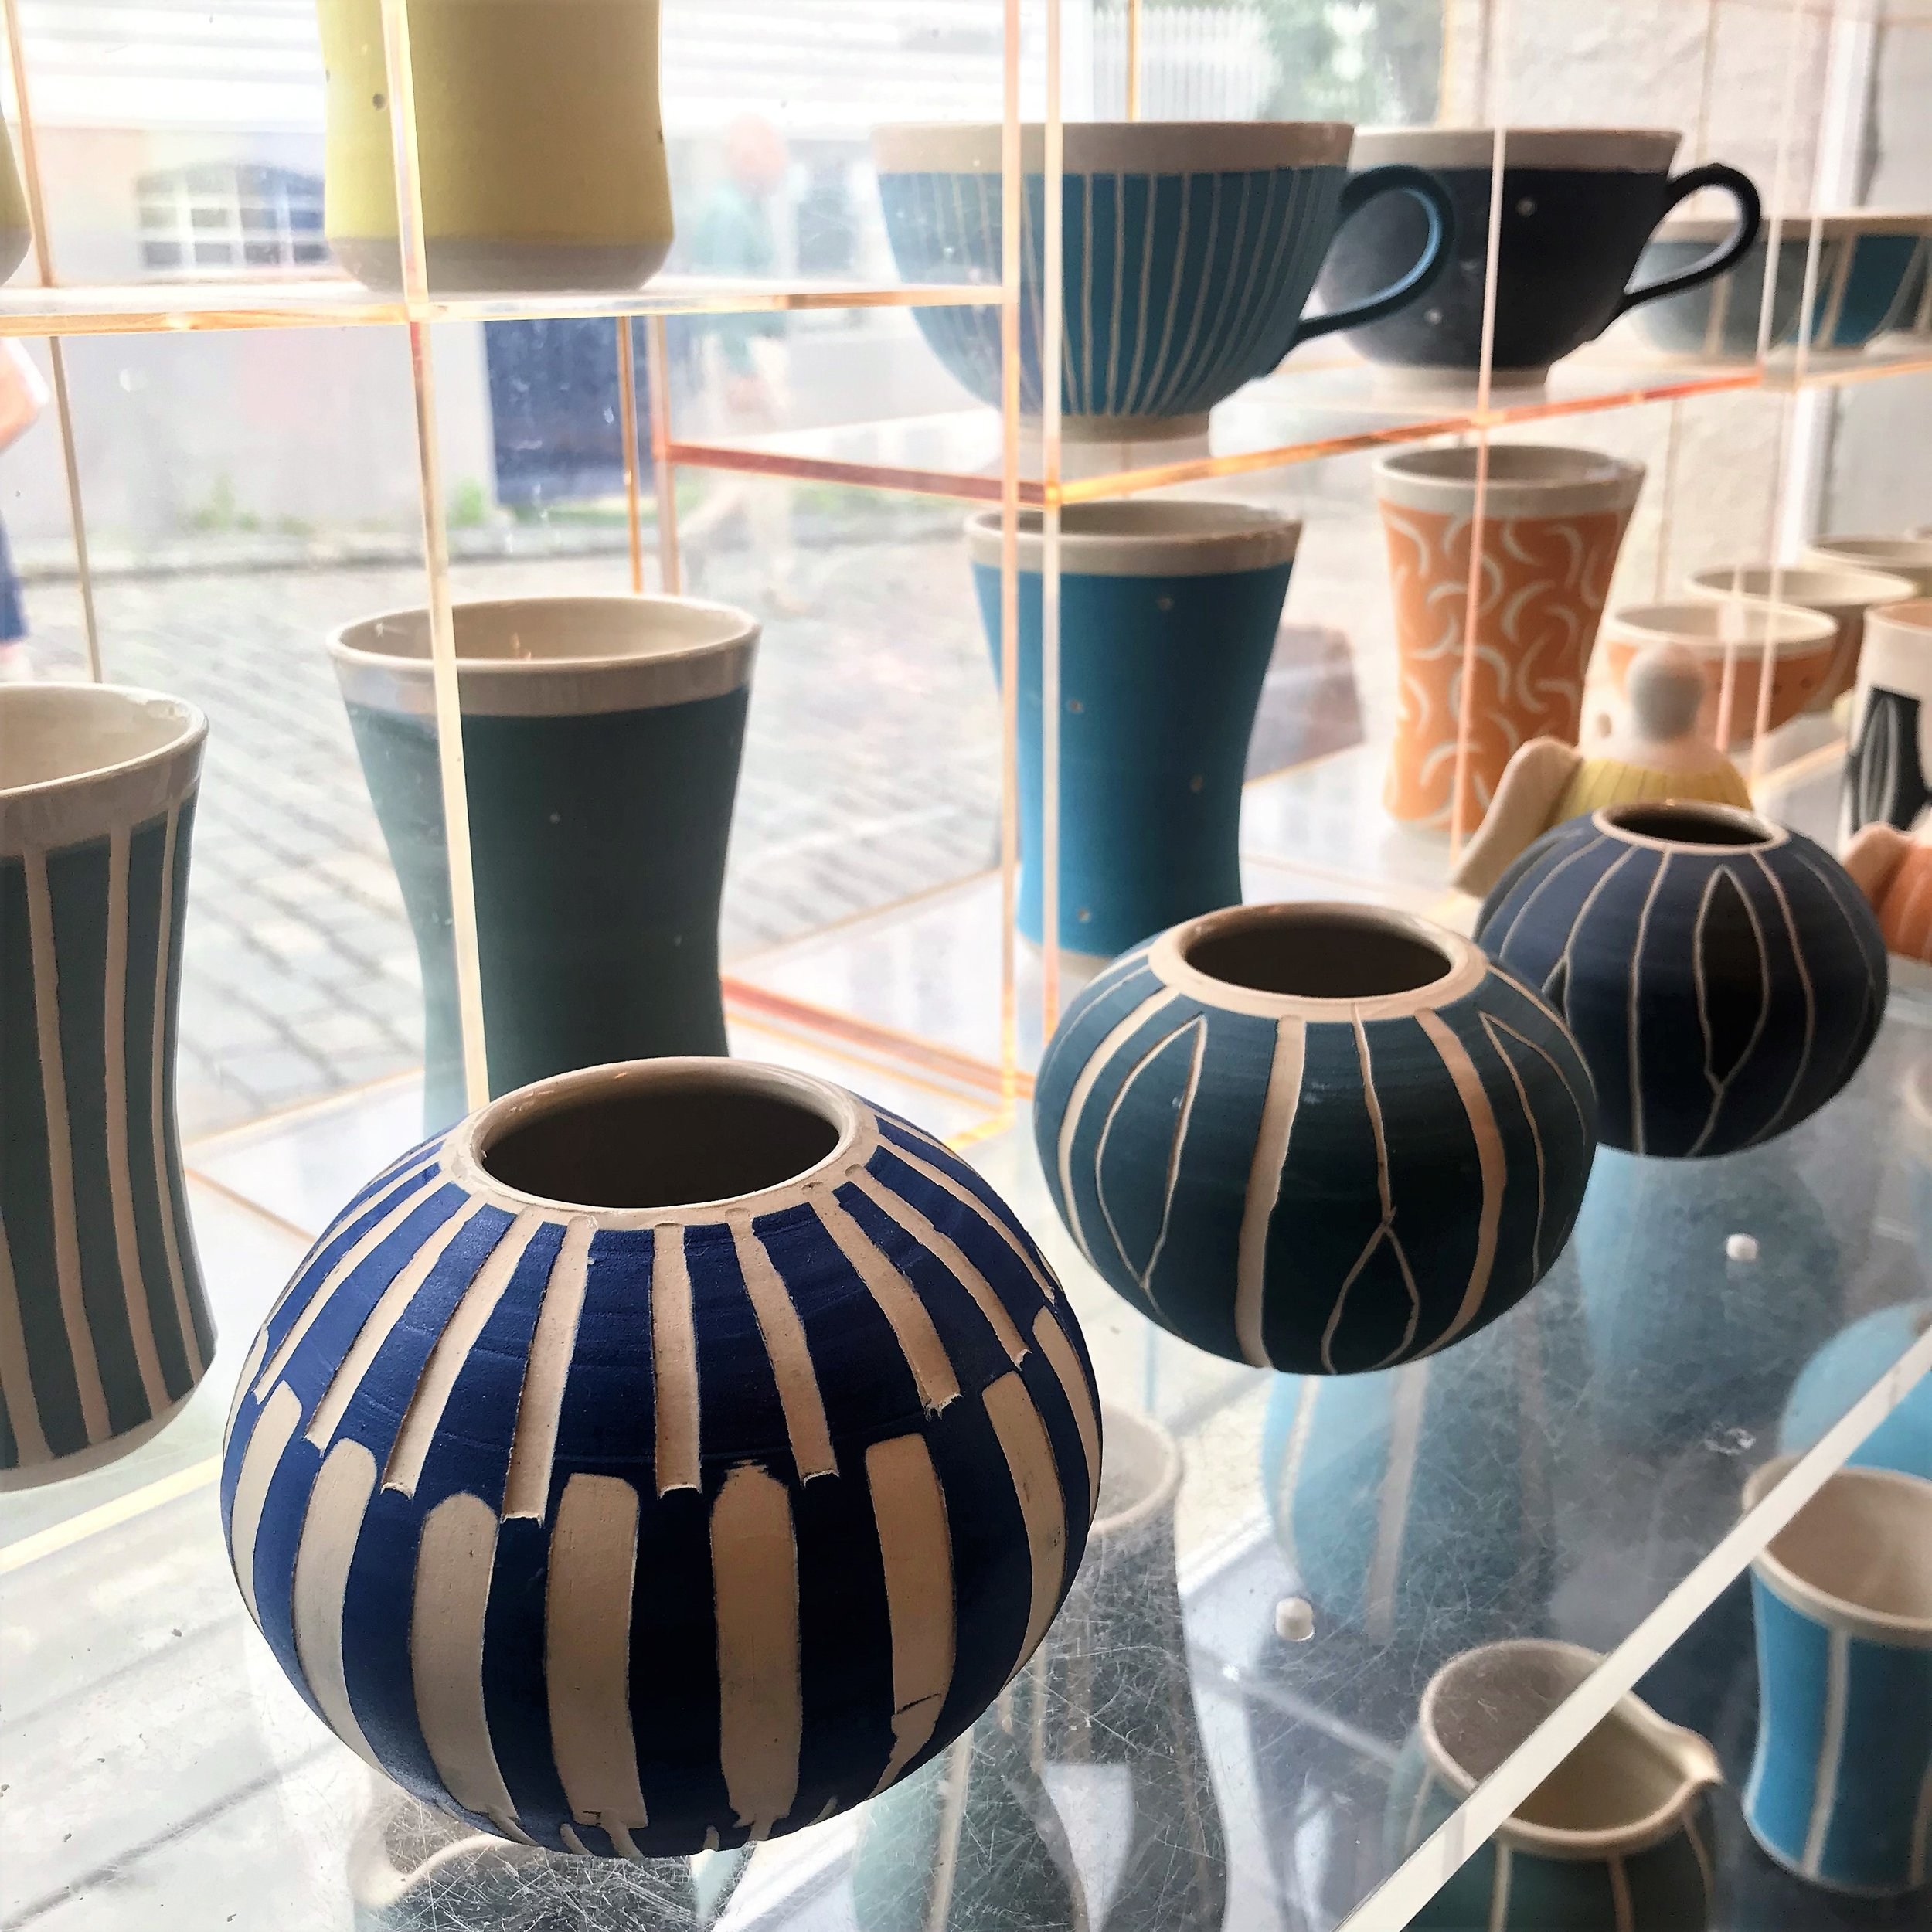 Beautiful ceramic collection in a makers studio in Stavanger.